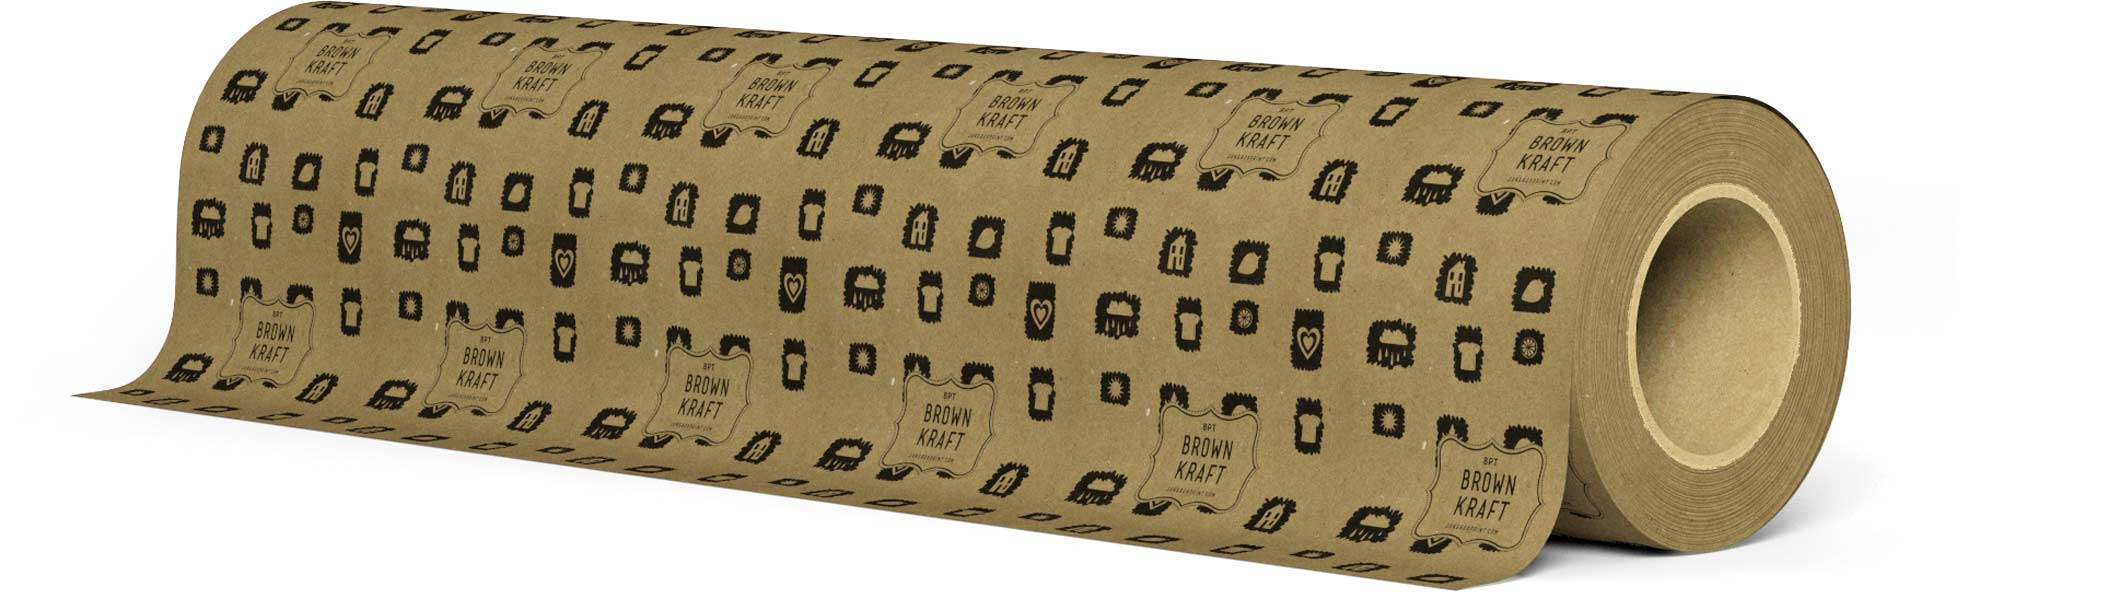 8pt Brown Kraft wrapping paper roll